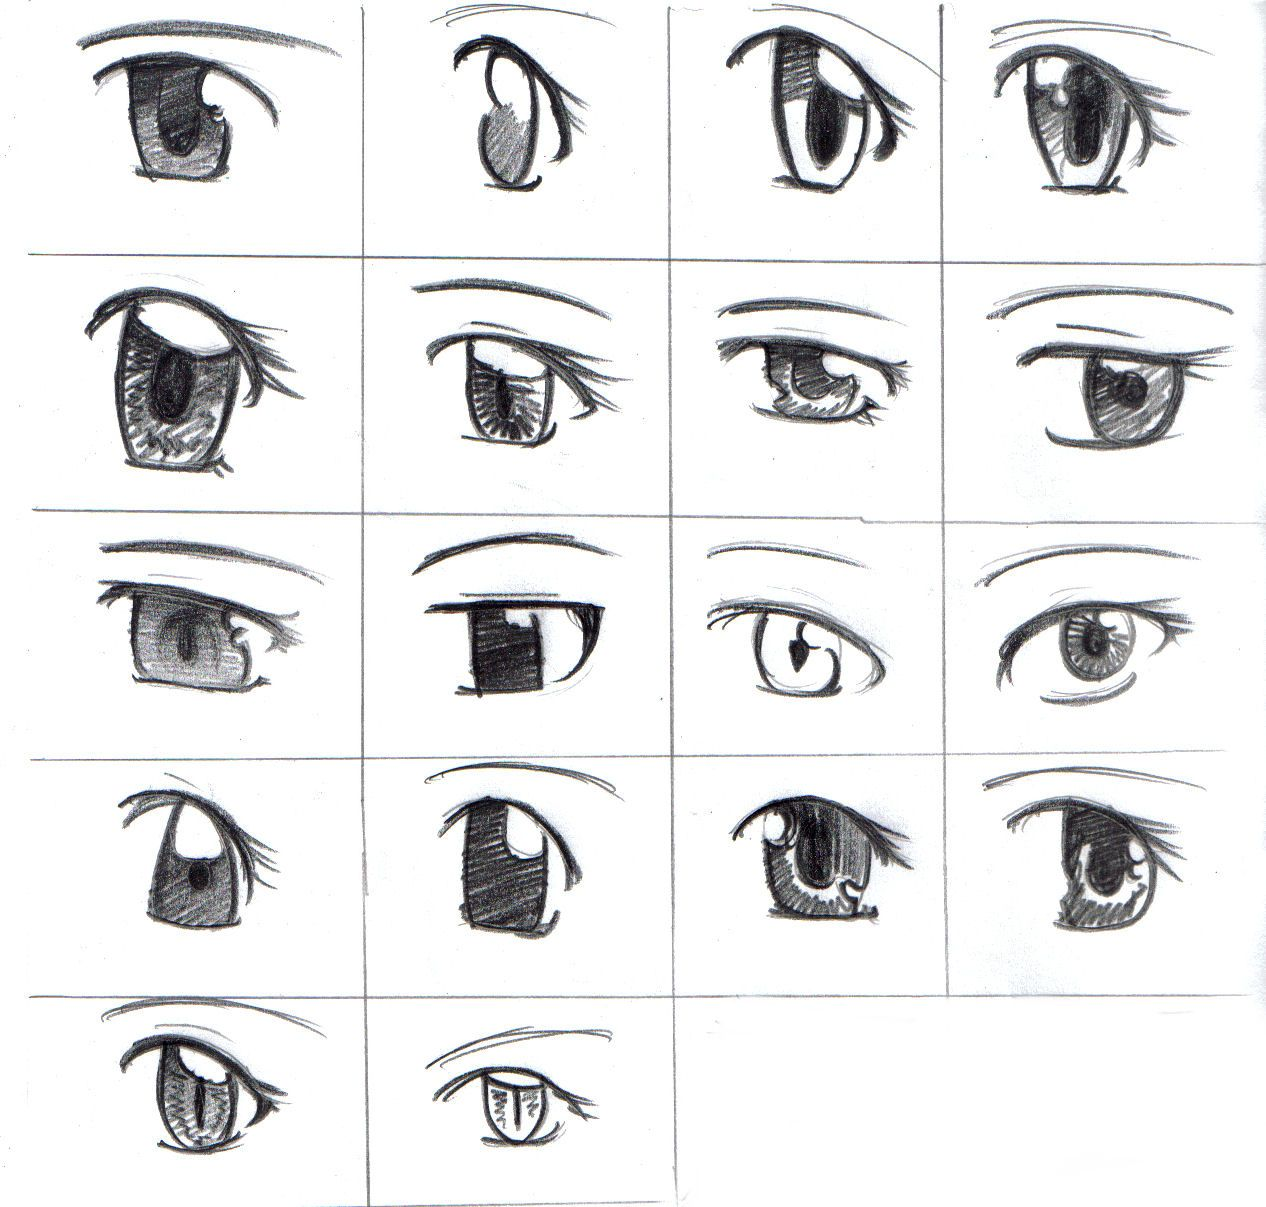 How to draw anime eyes | This image show some examples of ...